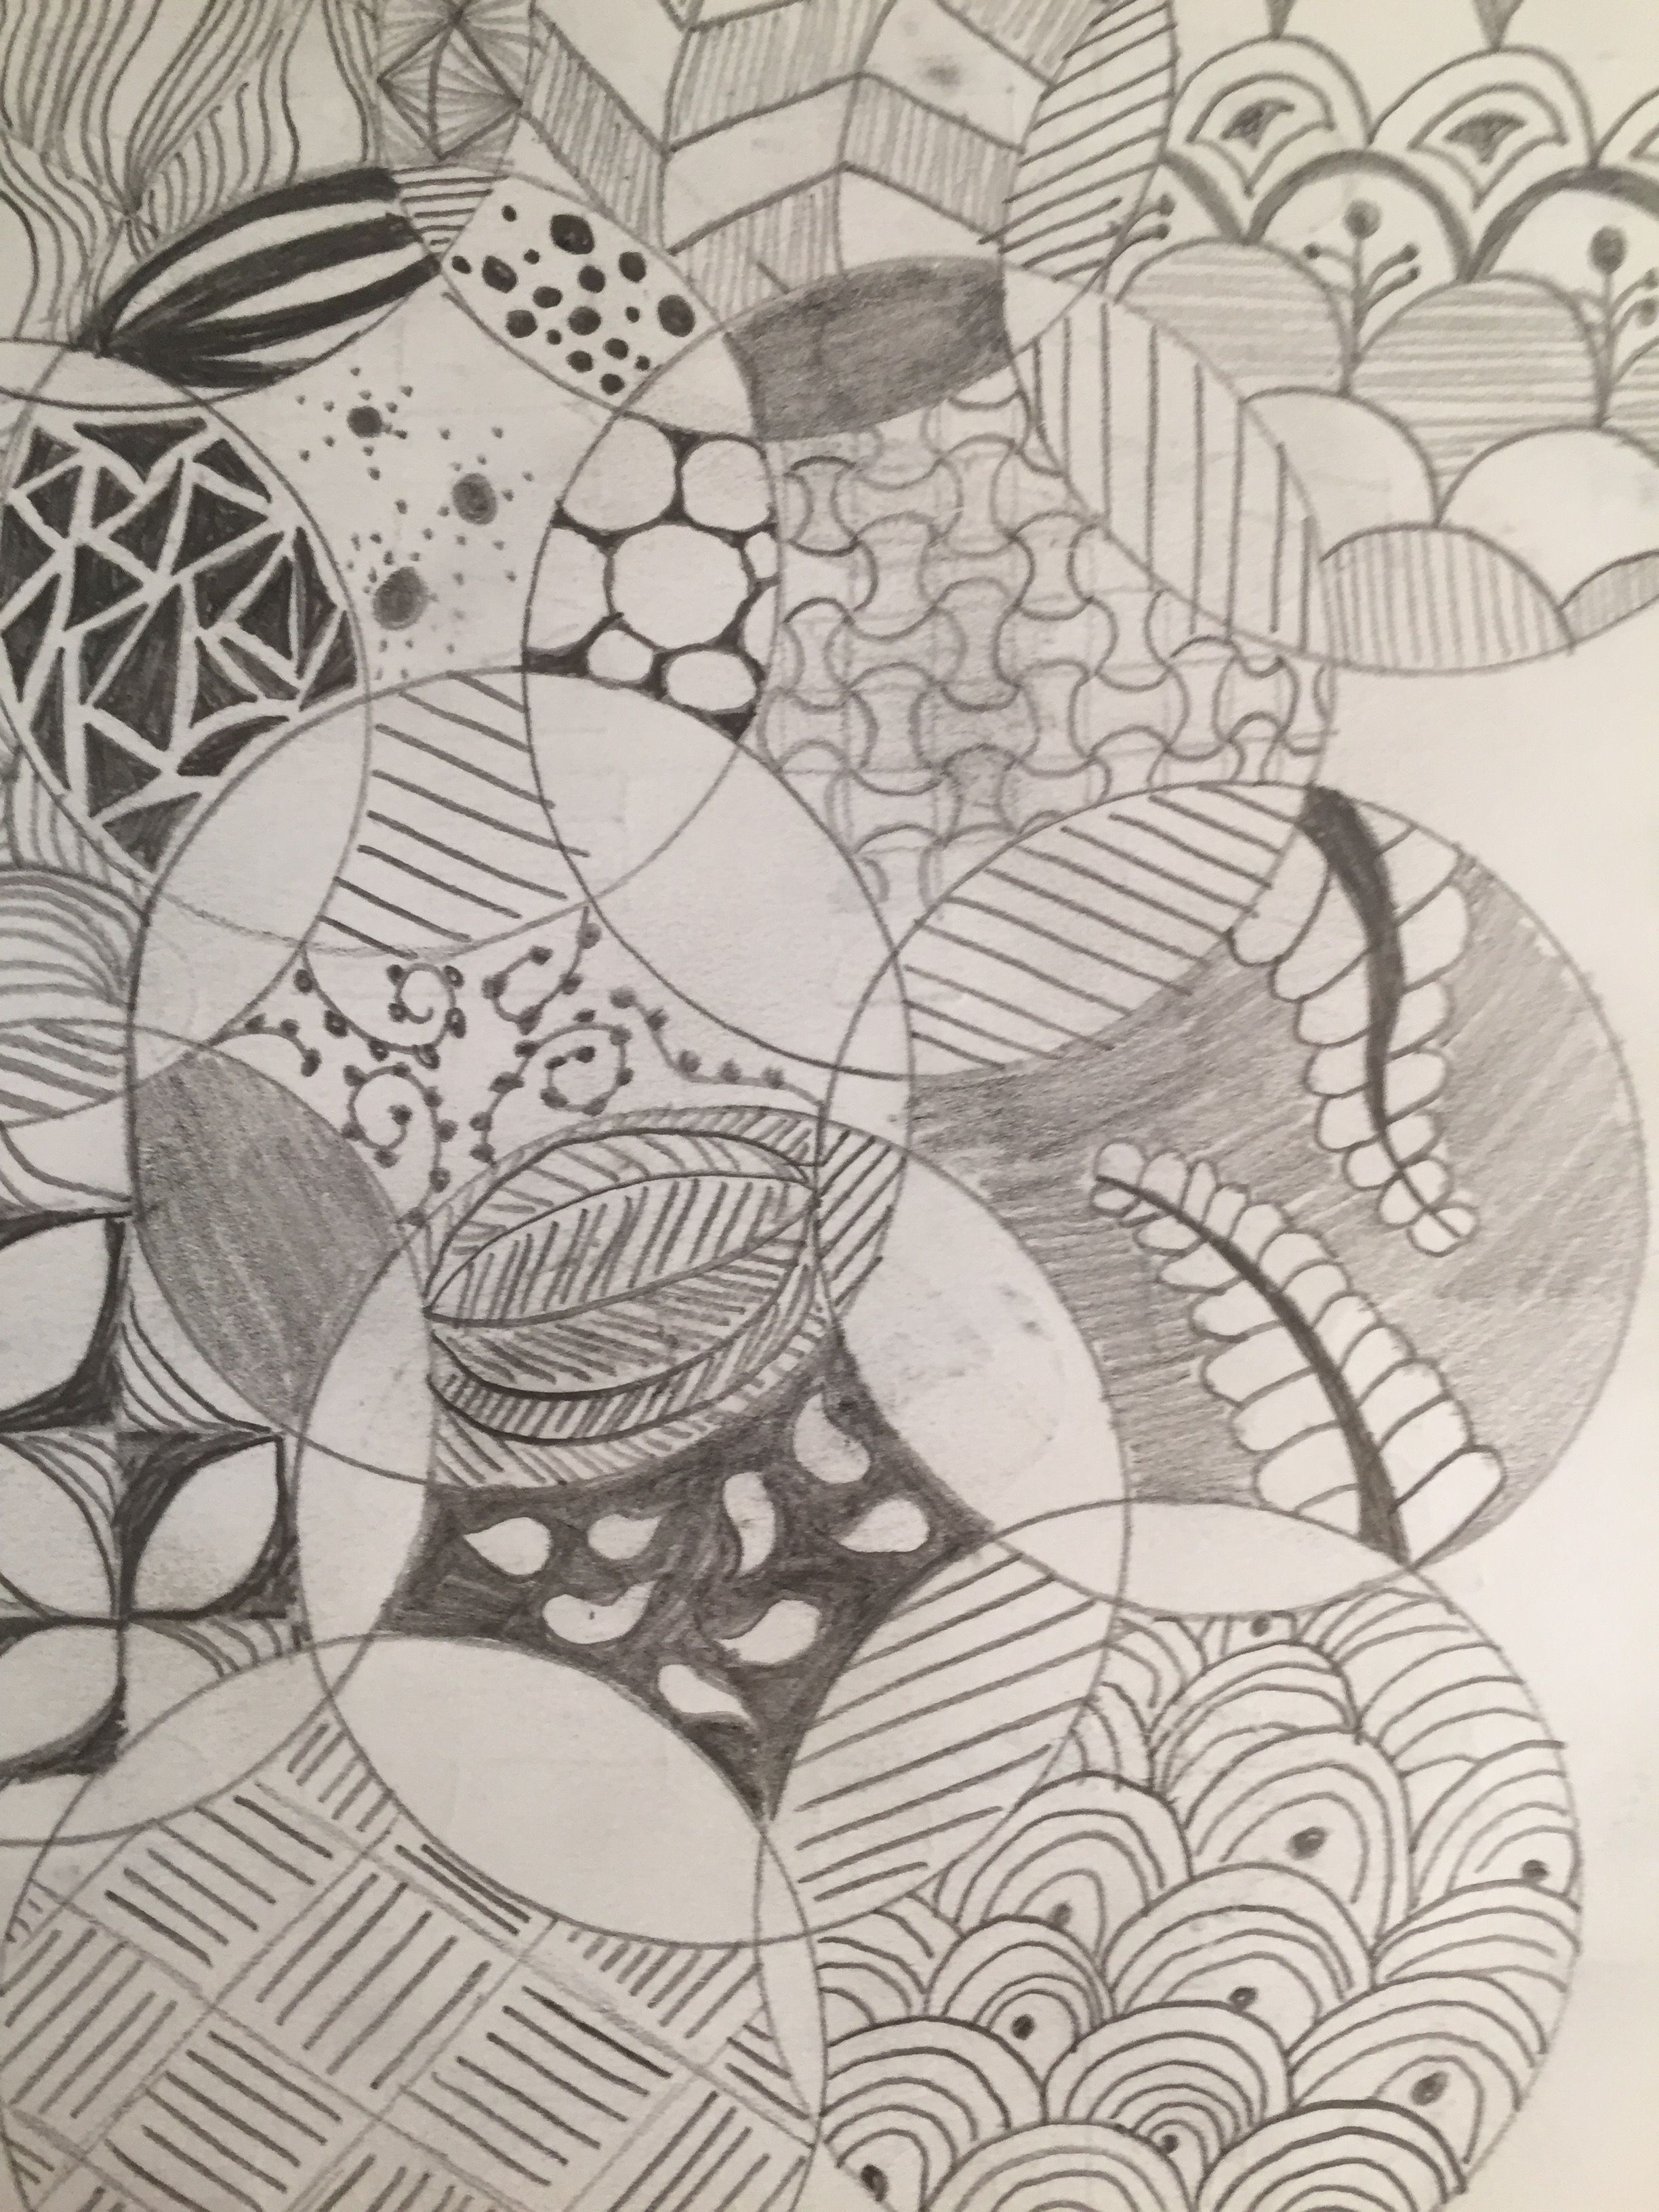 To start this, I drew many overlapping circles and started drawing Zentangle patterns within each section of the circles.